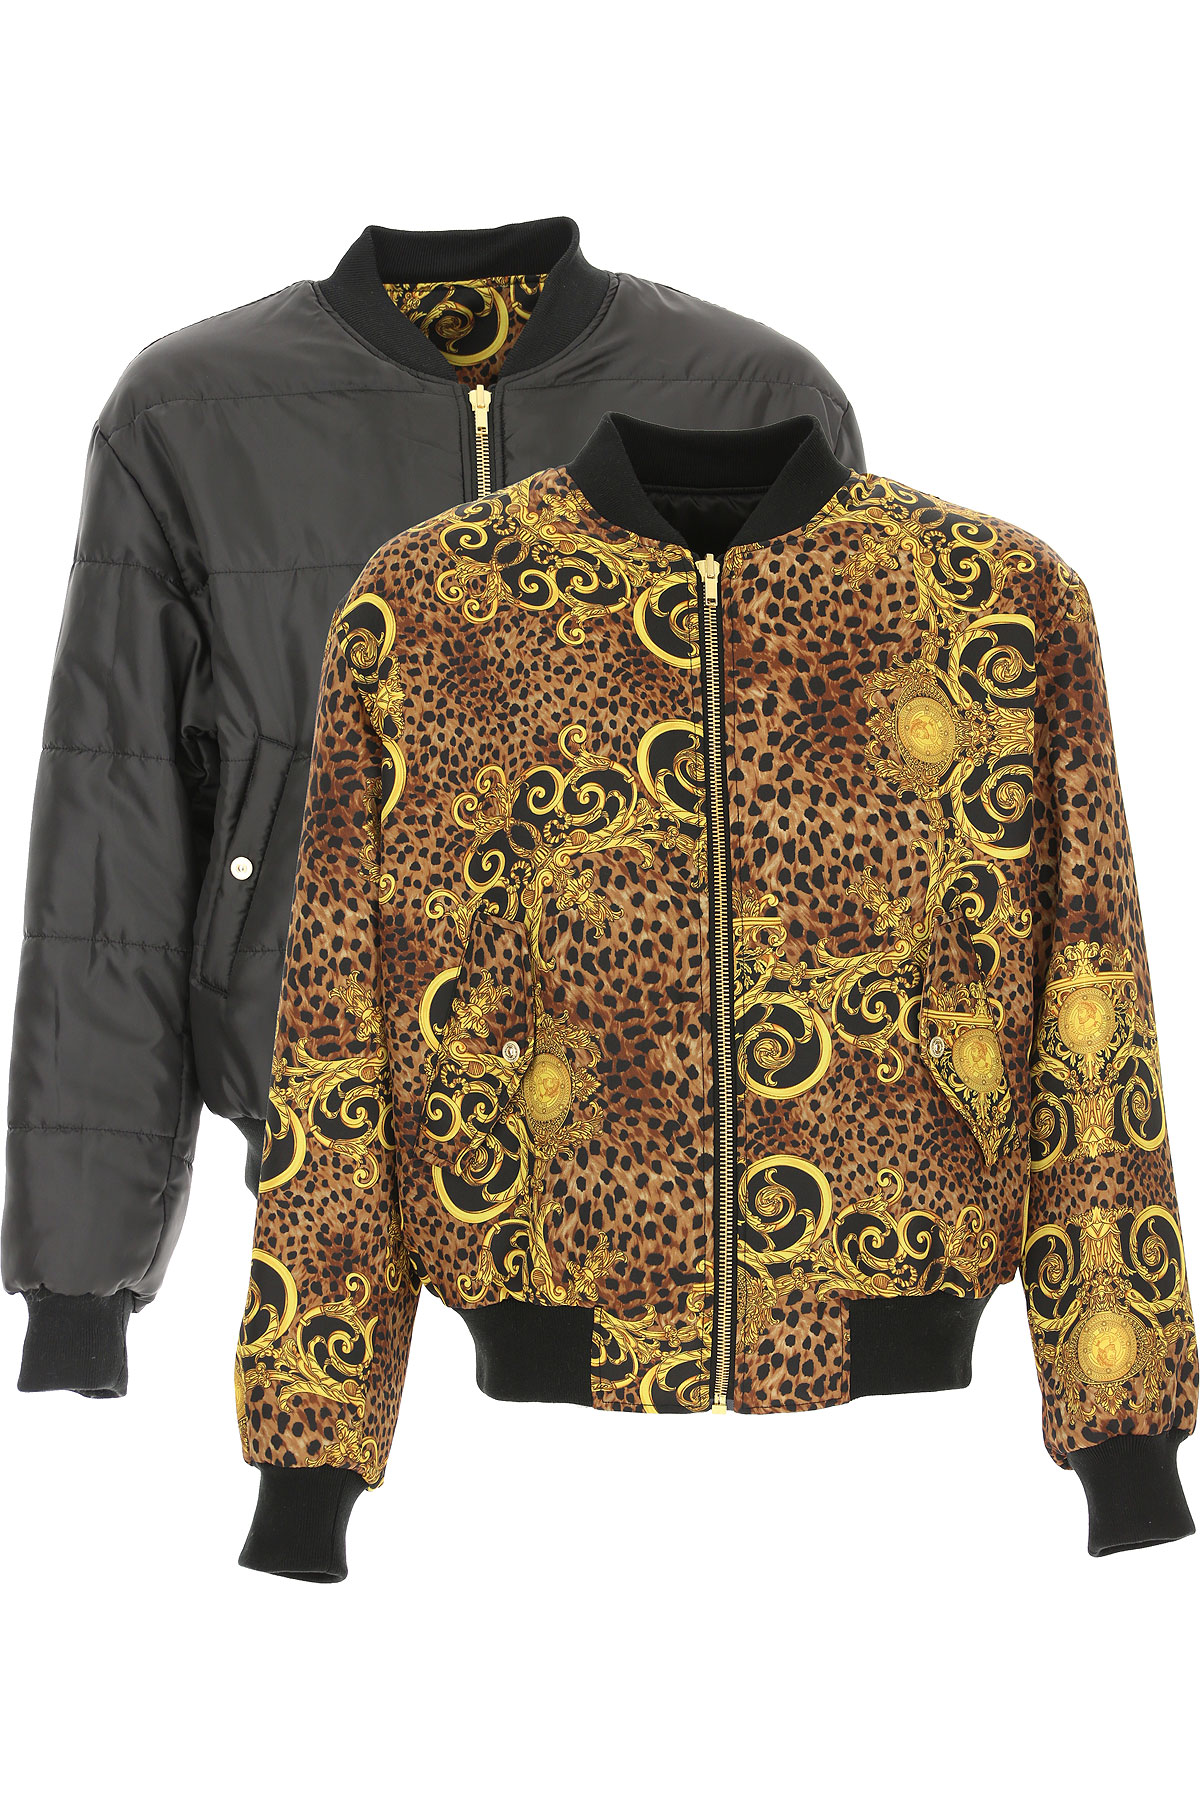 Versace Jeans Couture Down Jacket for Men, Puffer Ski Jacket On Sale, Reversible, Leopard, polyester, 2019, L M